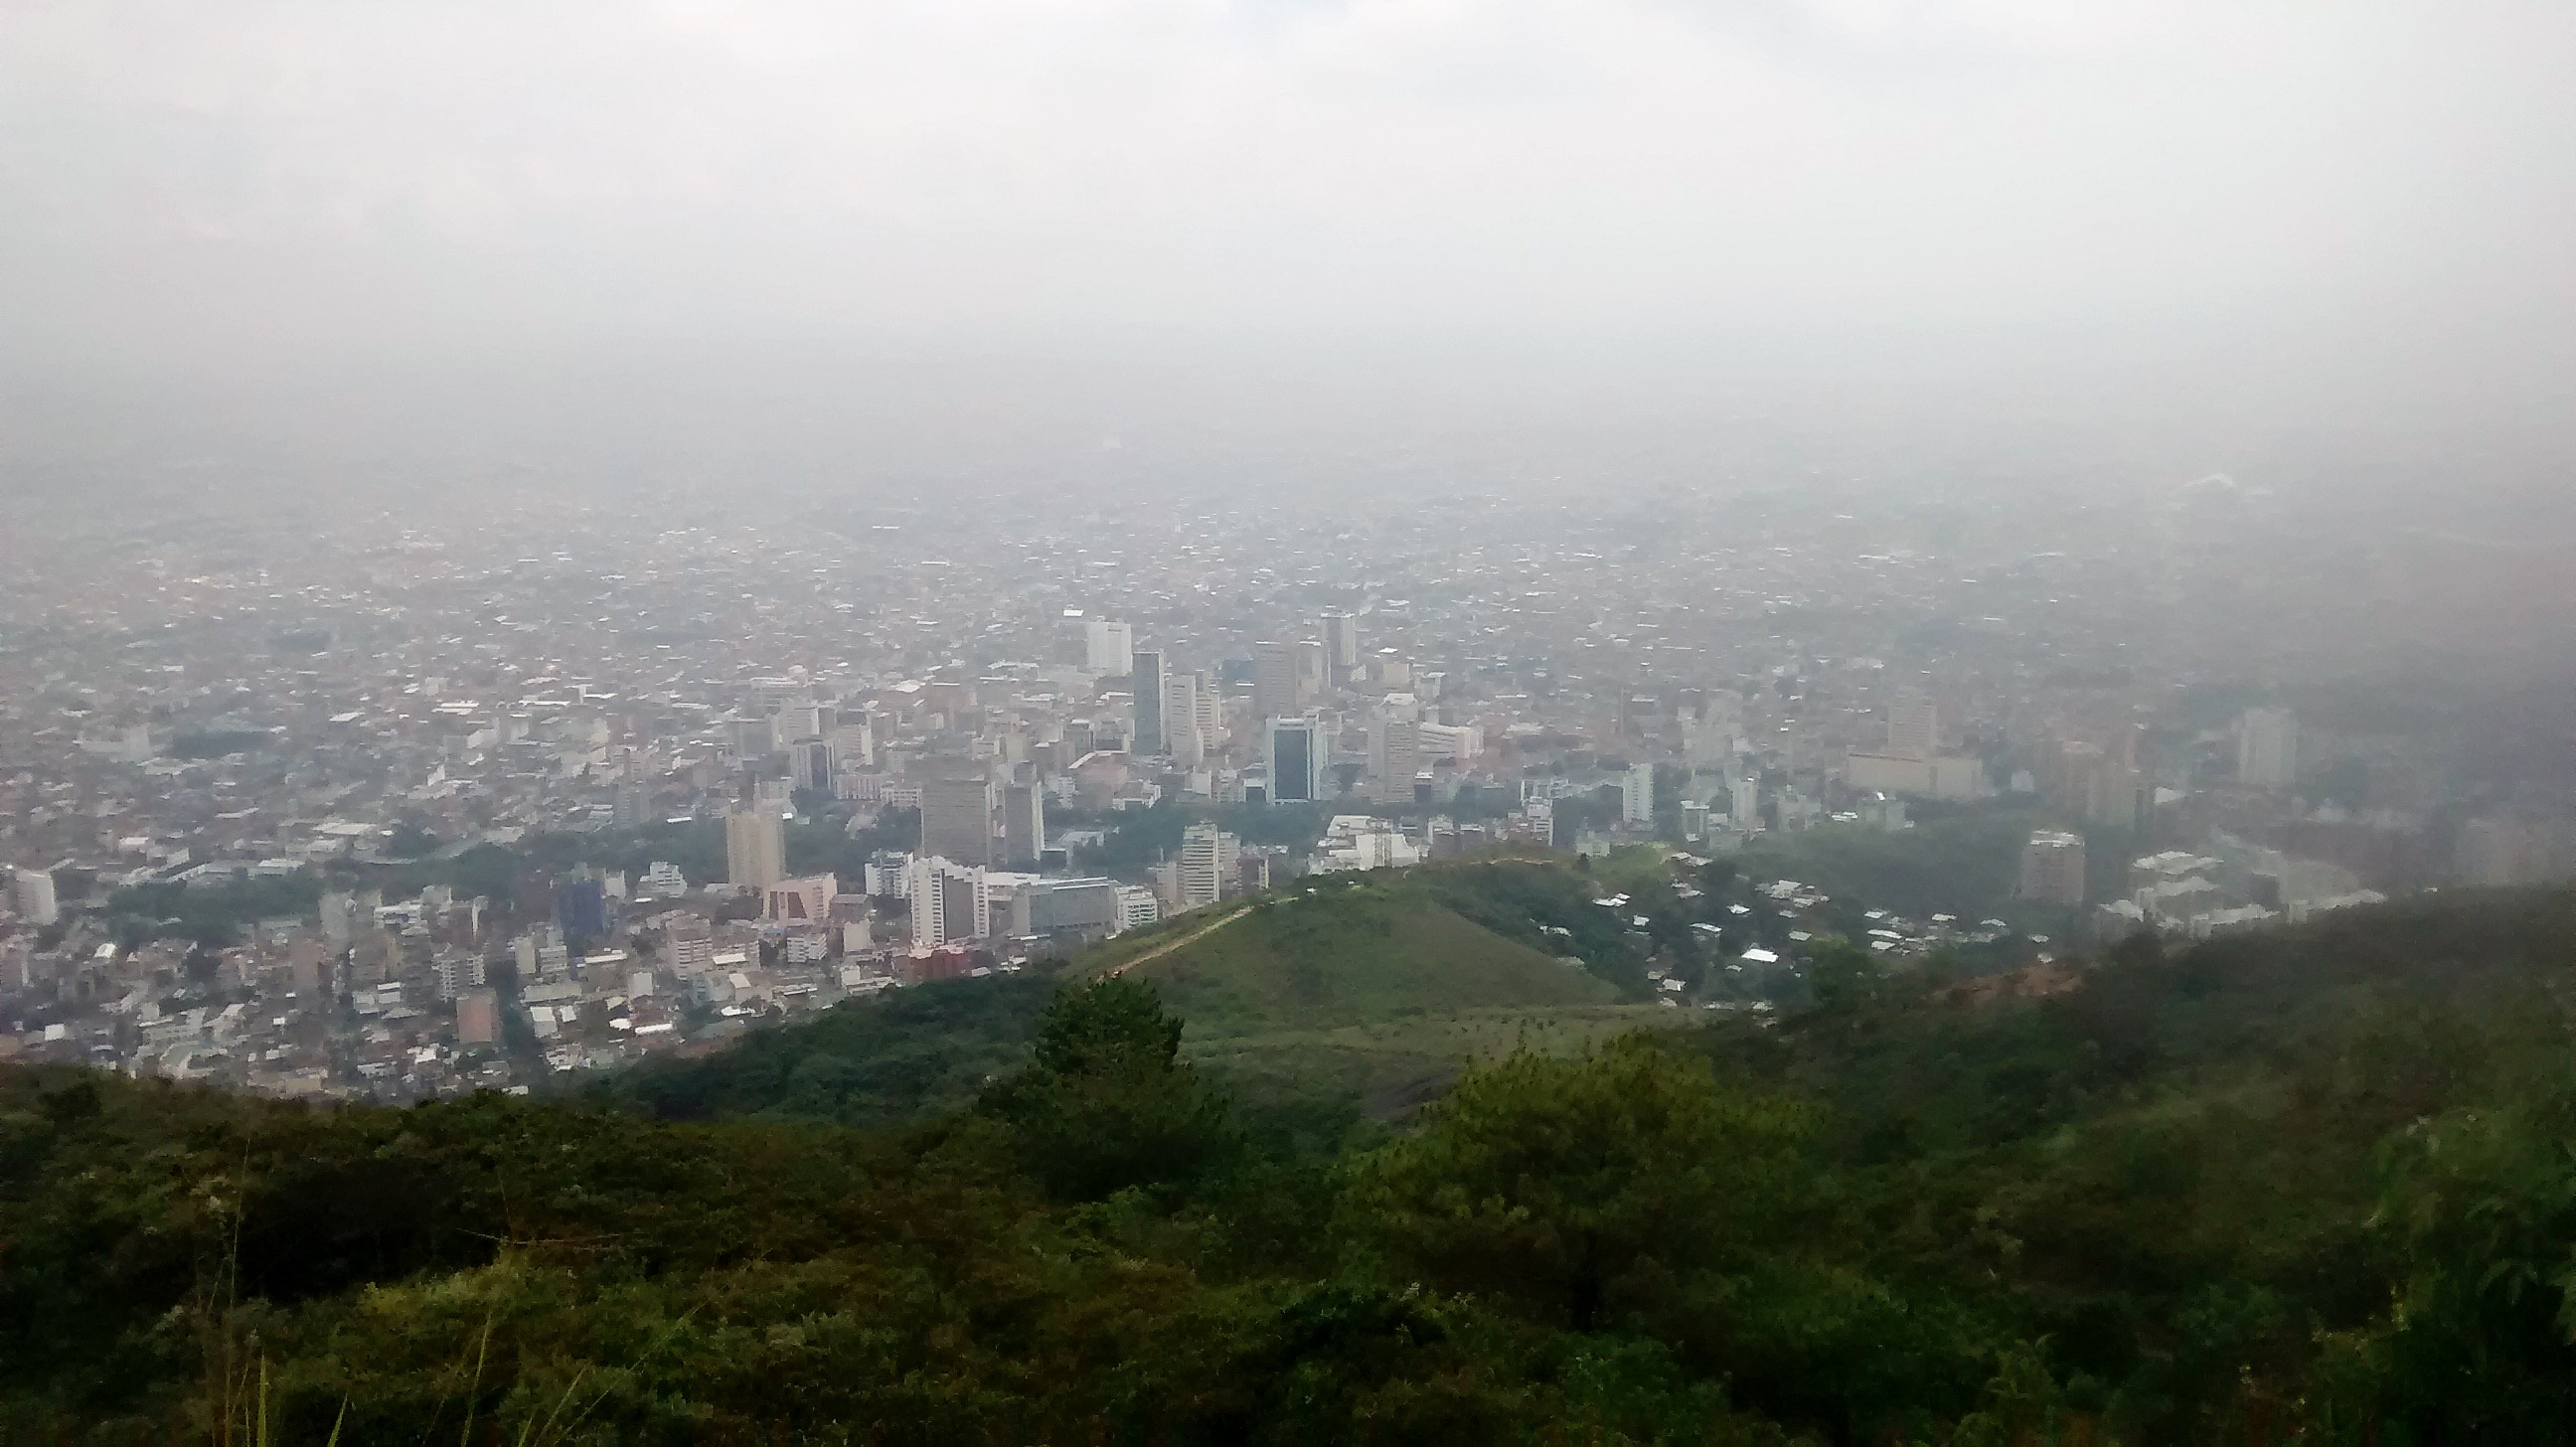 A view of Cali, Colombia from Cerro de las Tres Cruces ...